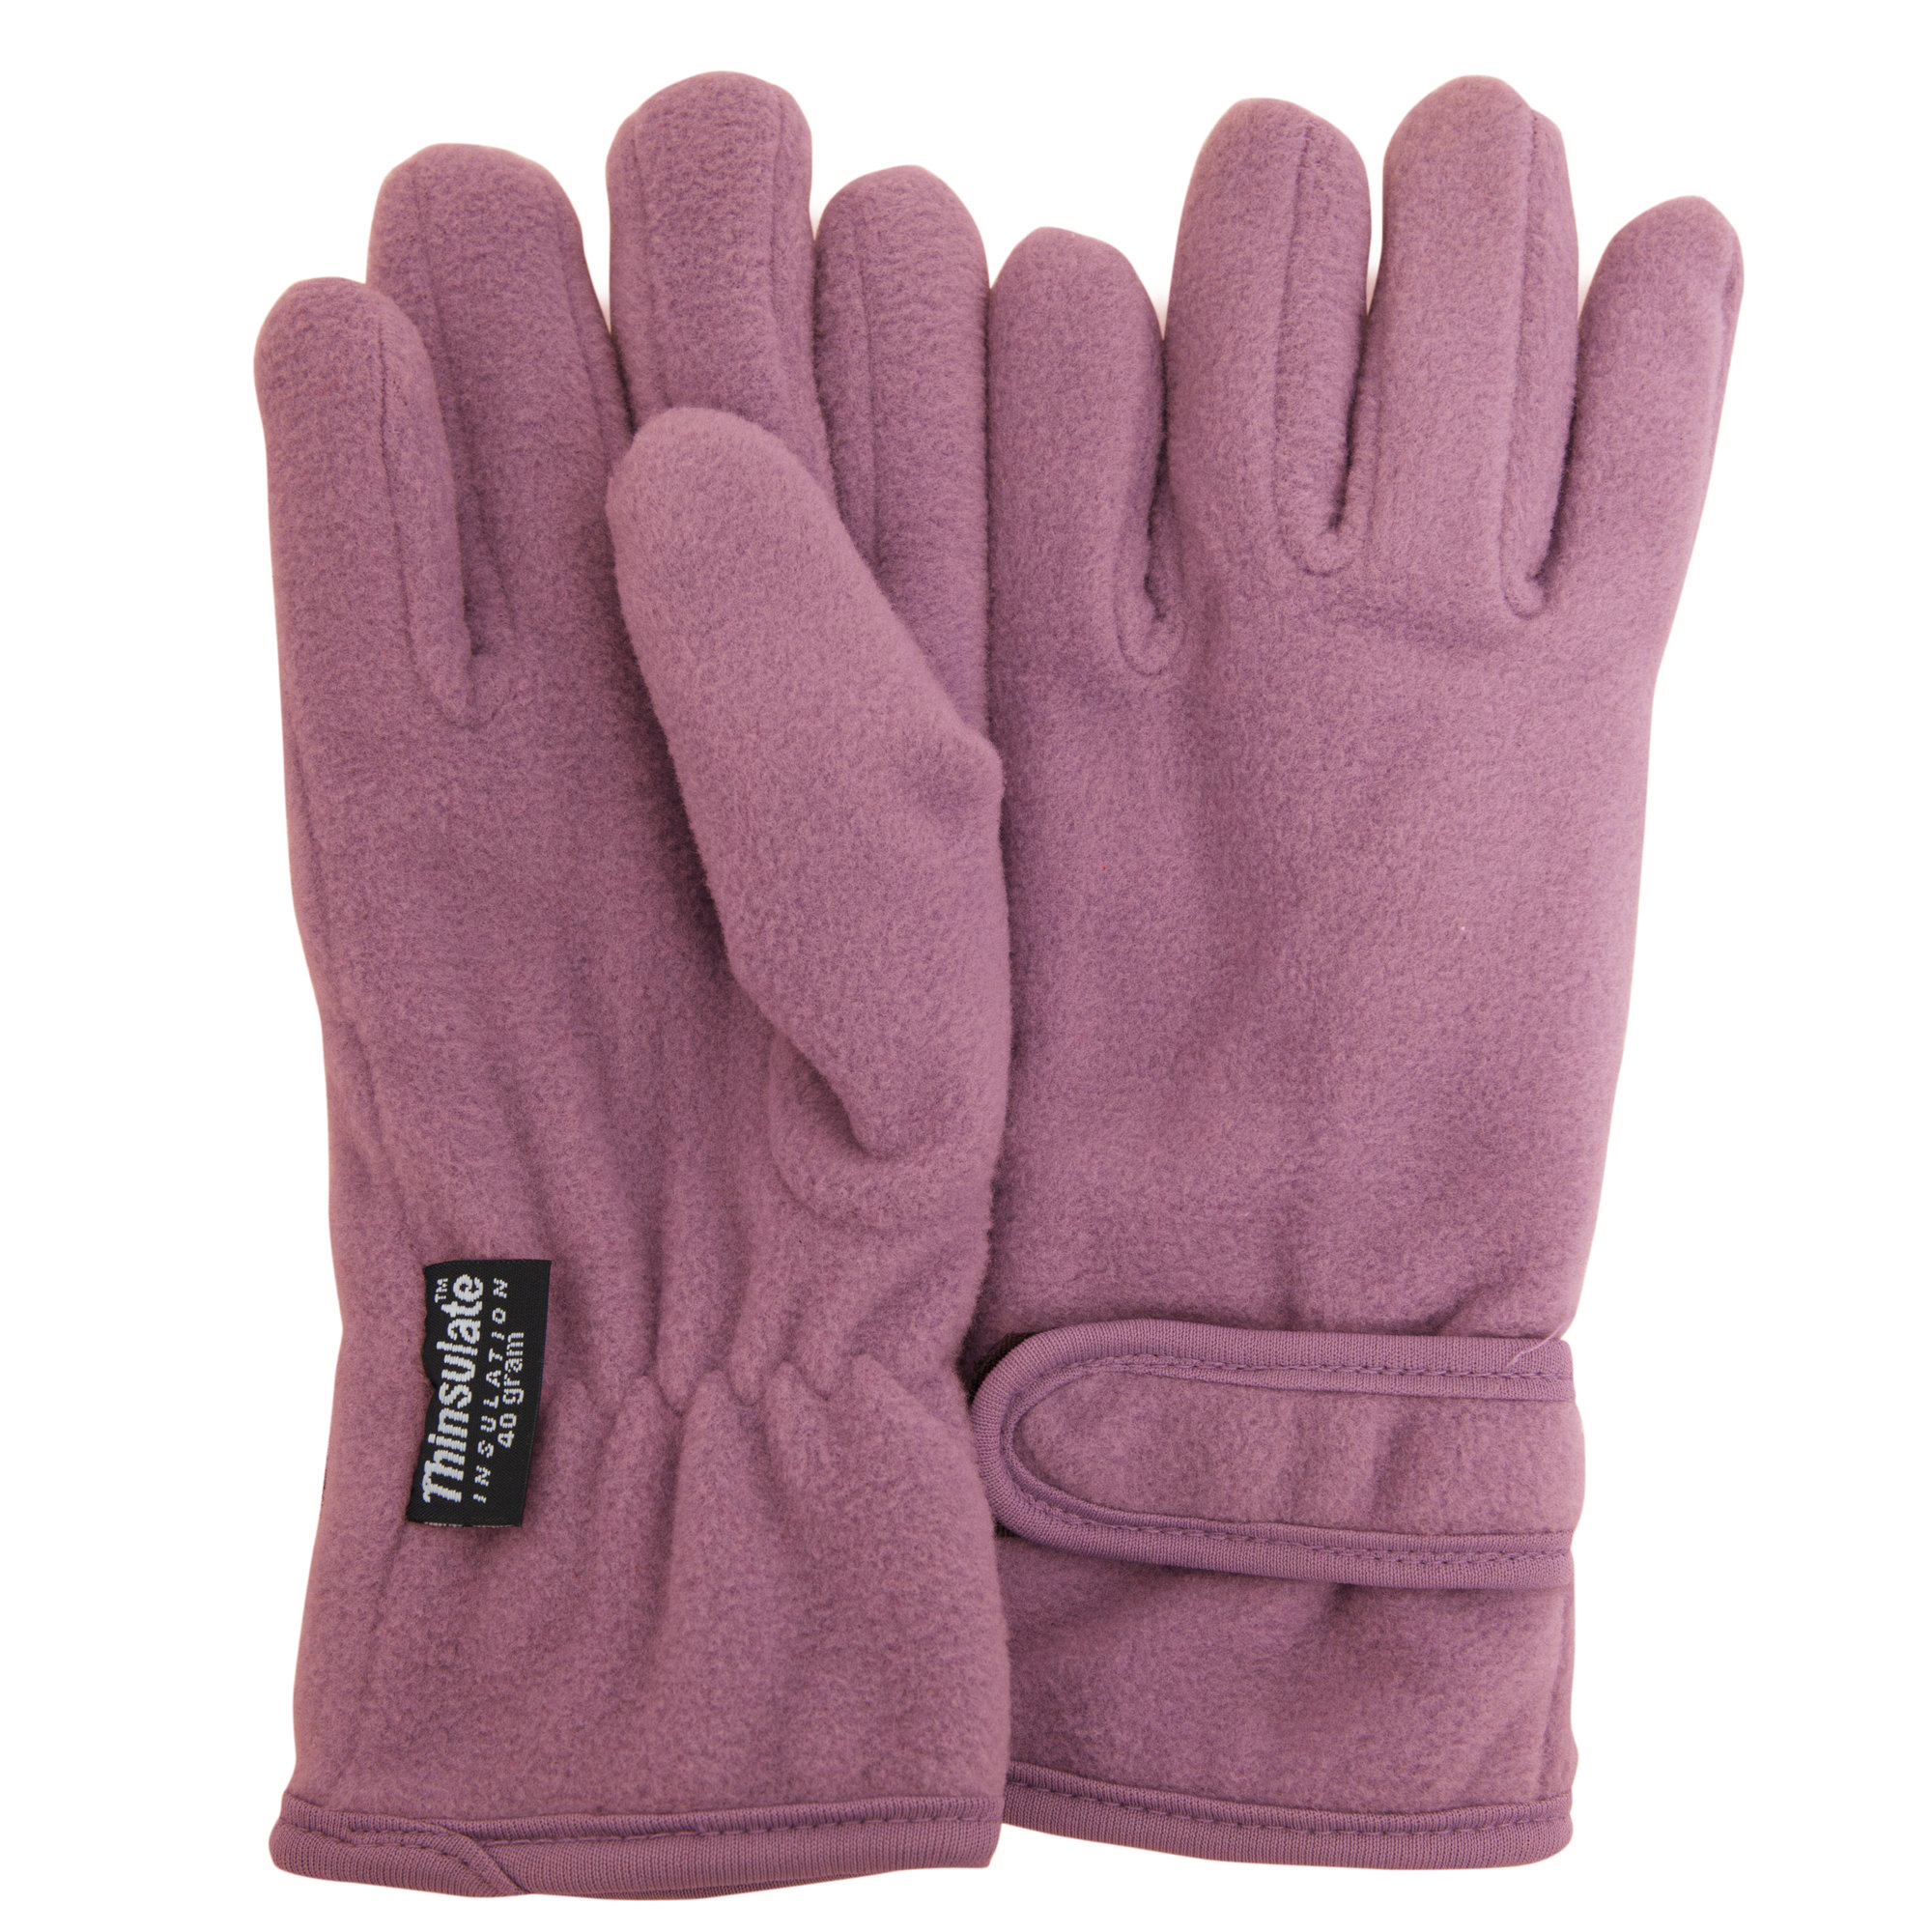 Thinsulate™ gloves keep your hands warm and dry without extra bulk. DICK'S Sporting Goods carries Thinsulate™ mittens and gloves for skiing, hunting and casual wear.